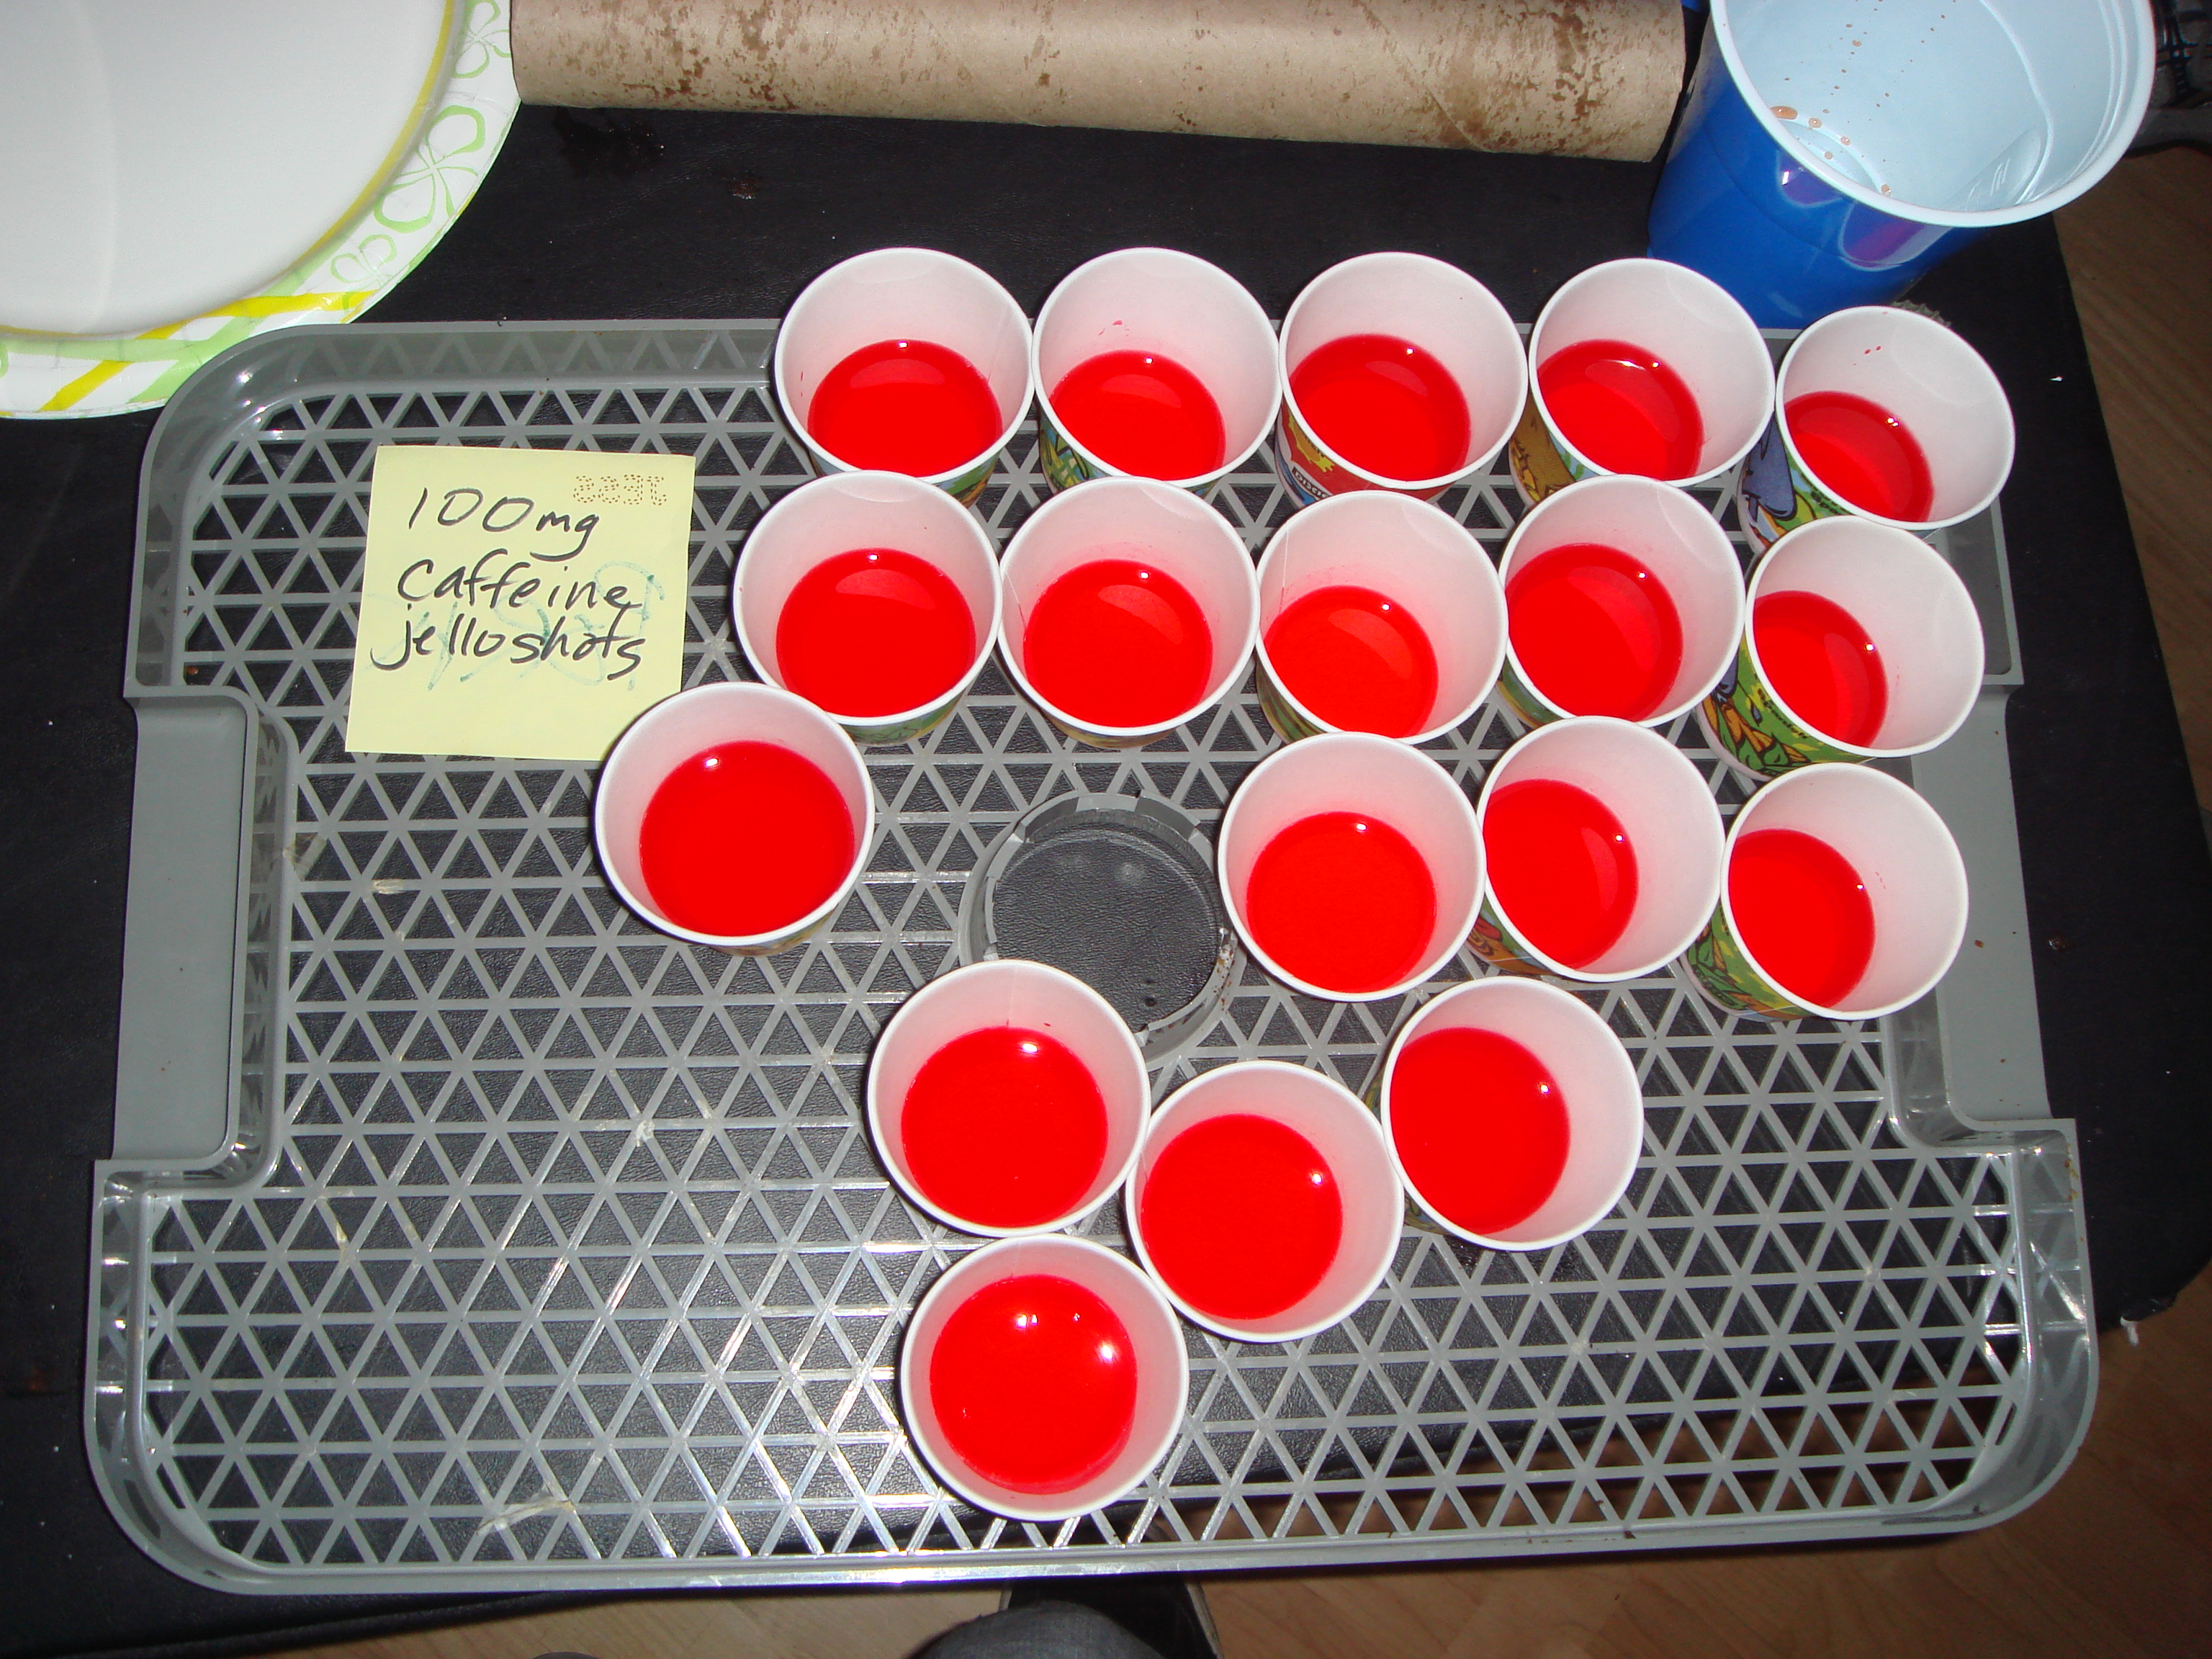 Caffeinated Jello Shots